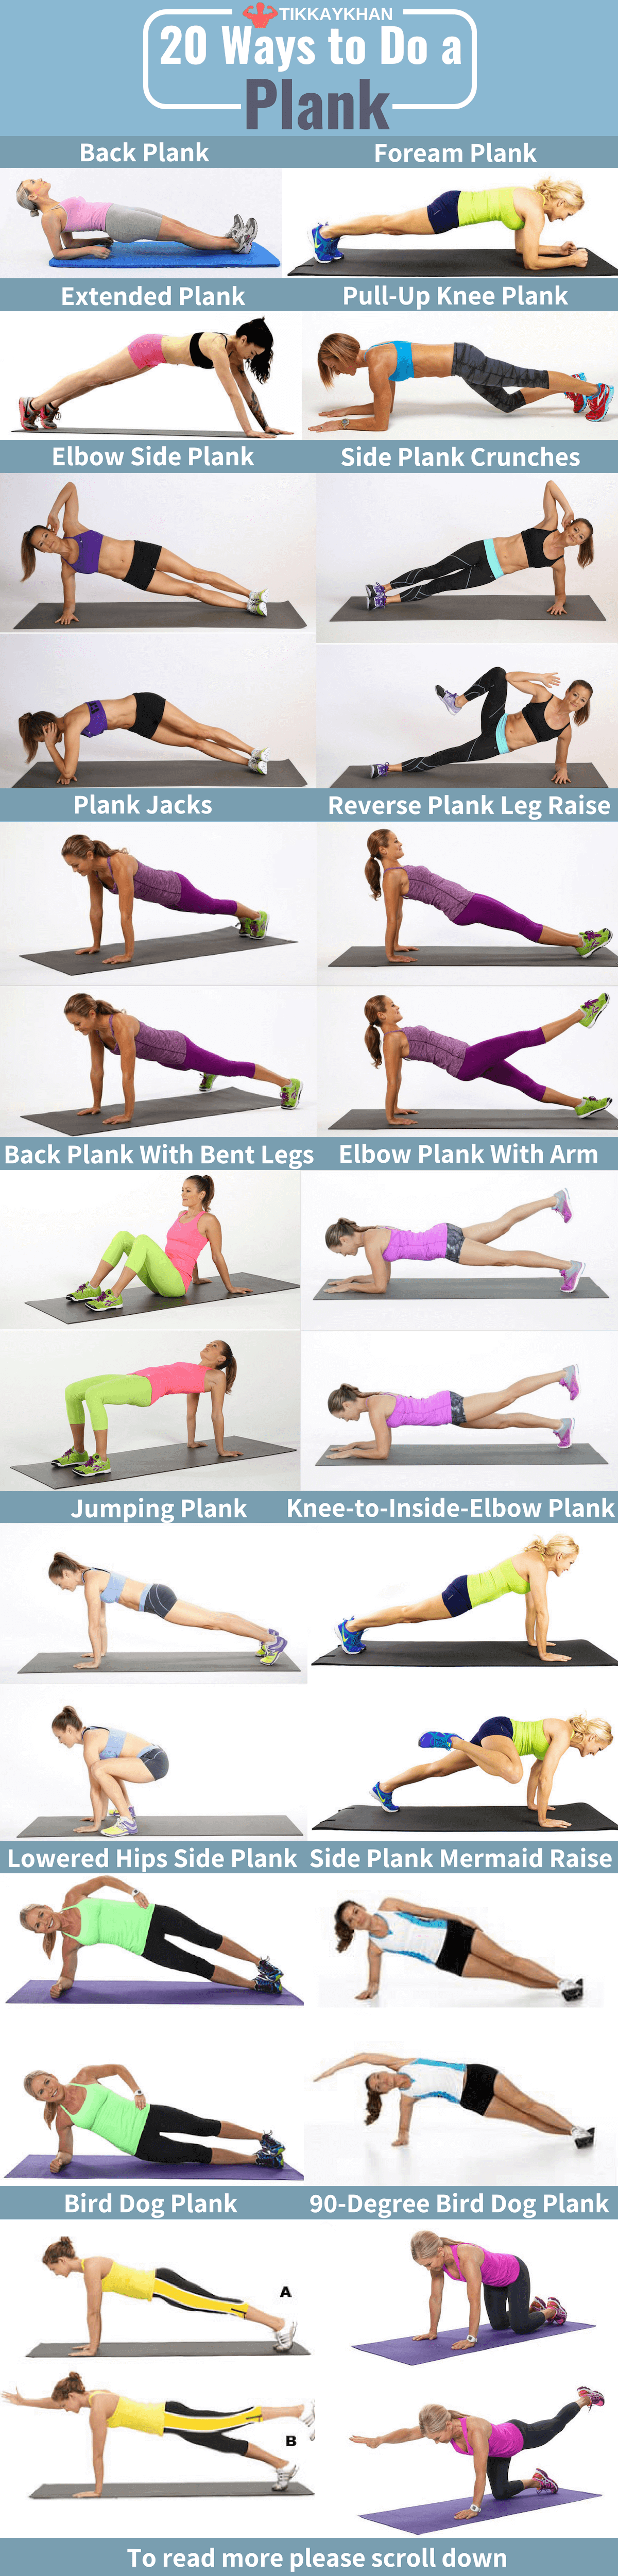 plank workout for abs Infographic